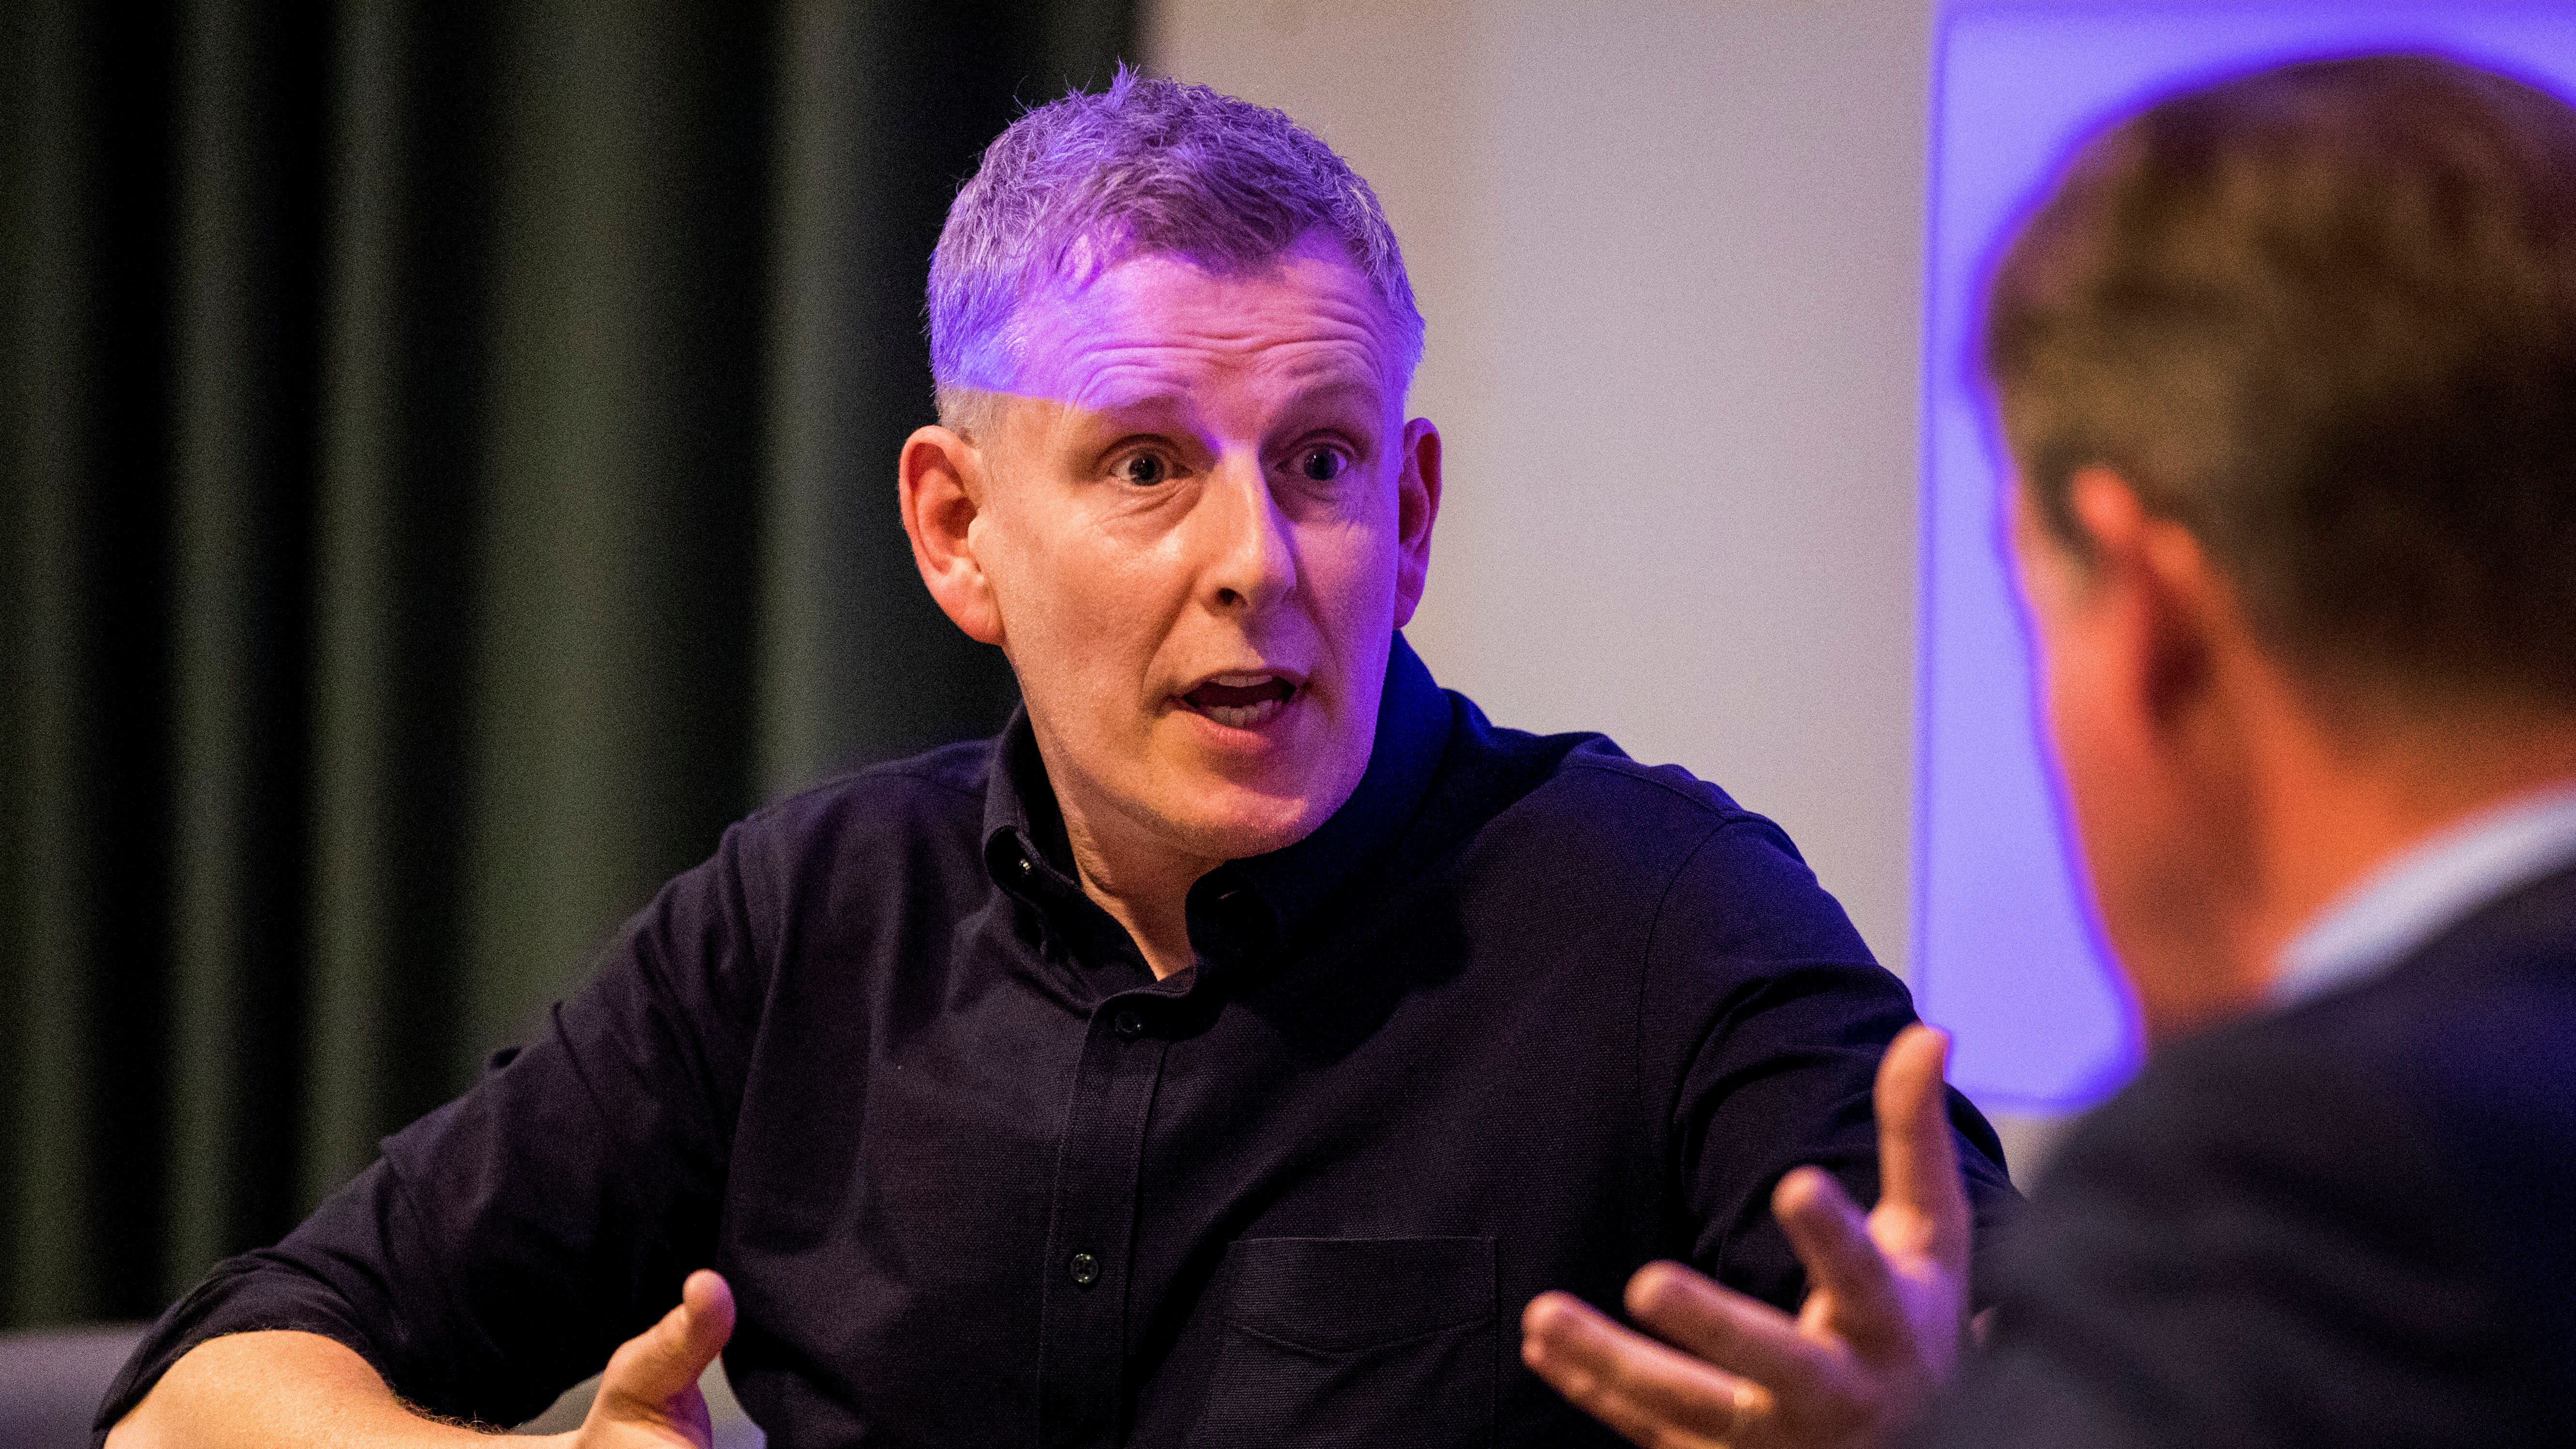 Comedian Paddy Kielty has called for measures to tackle the segregation of education in Northern Ireland